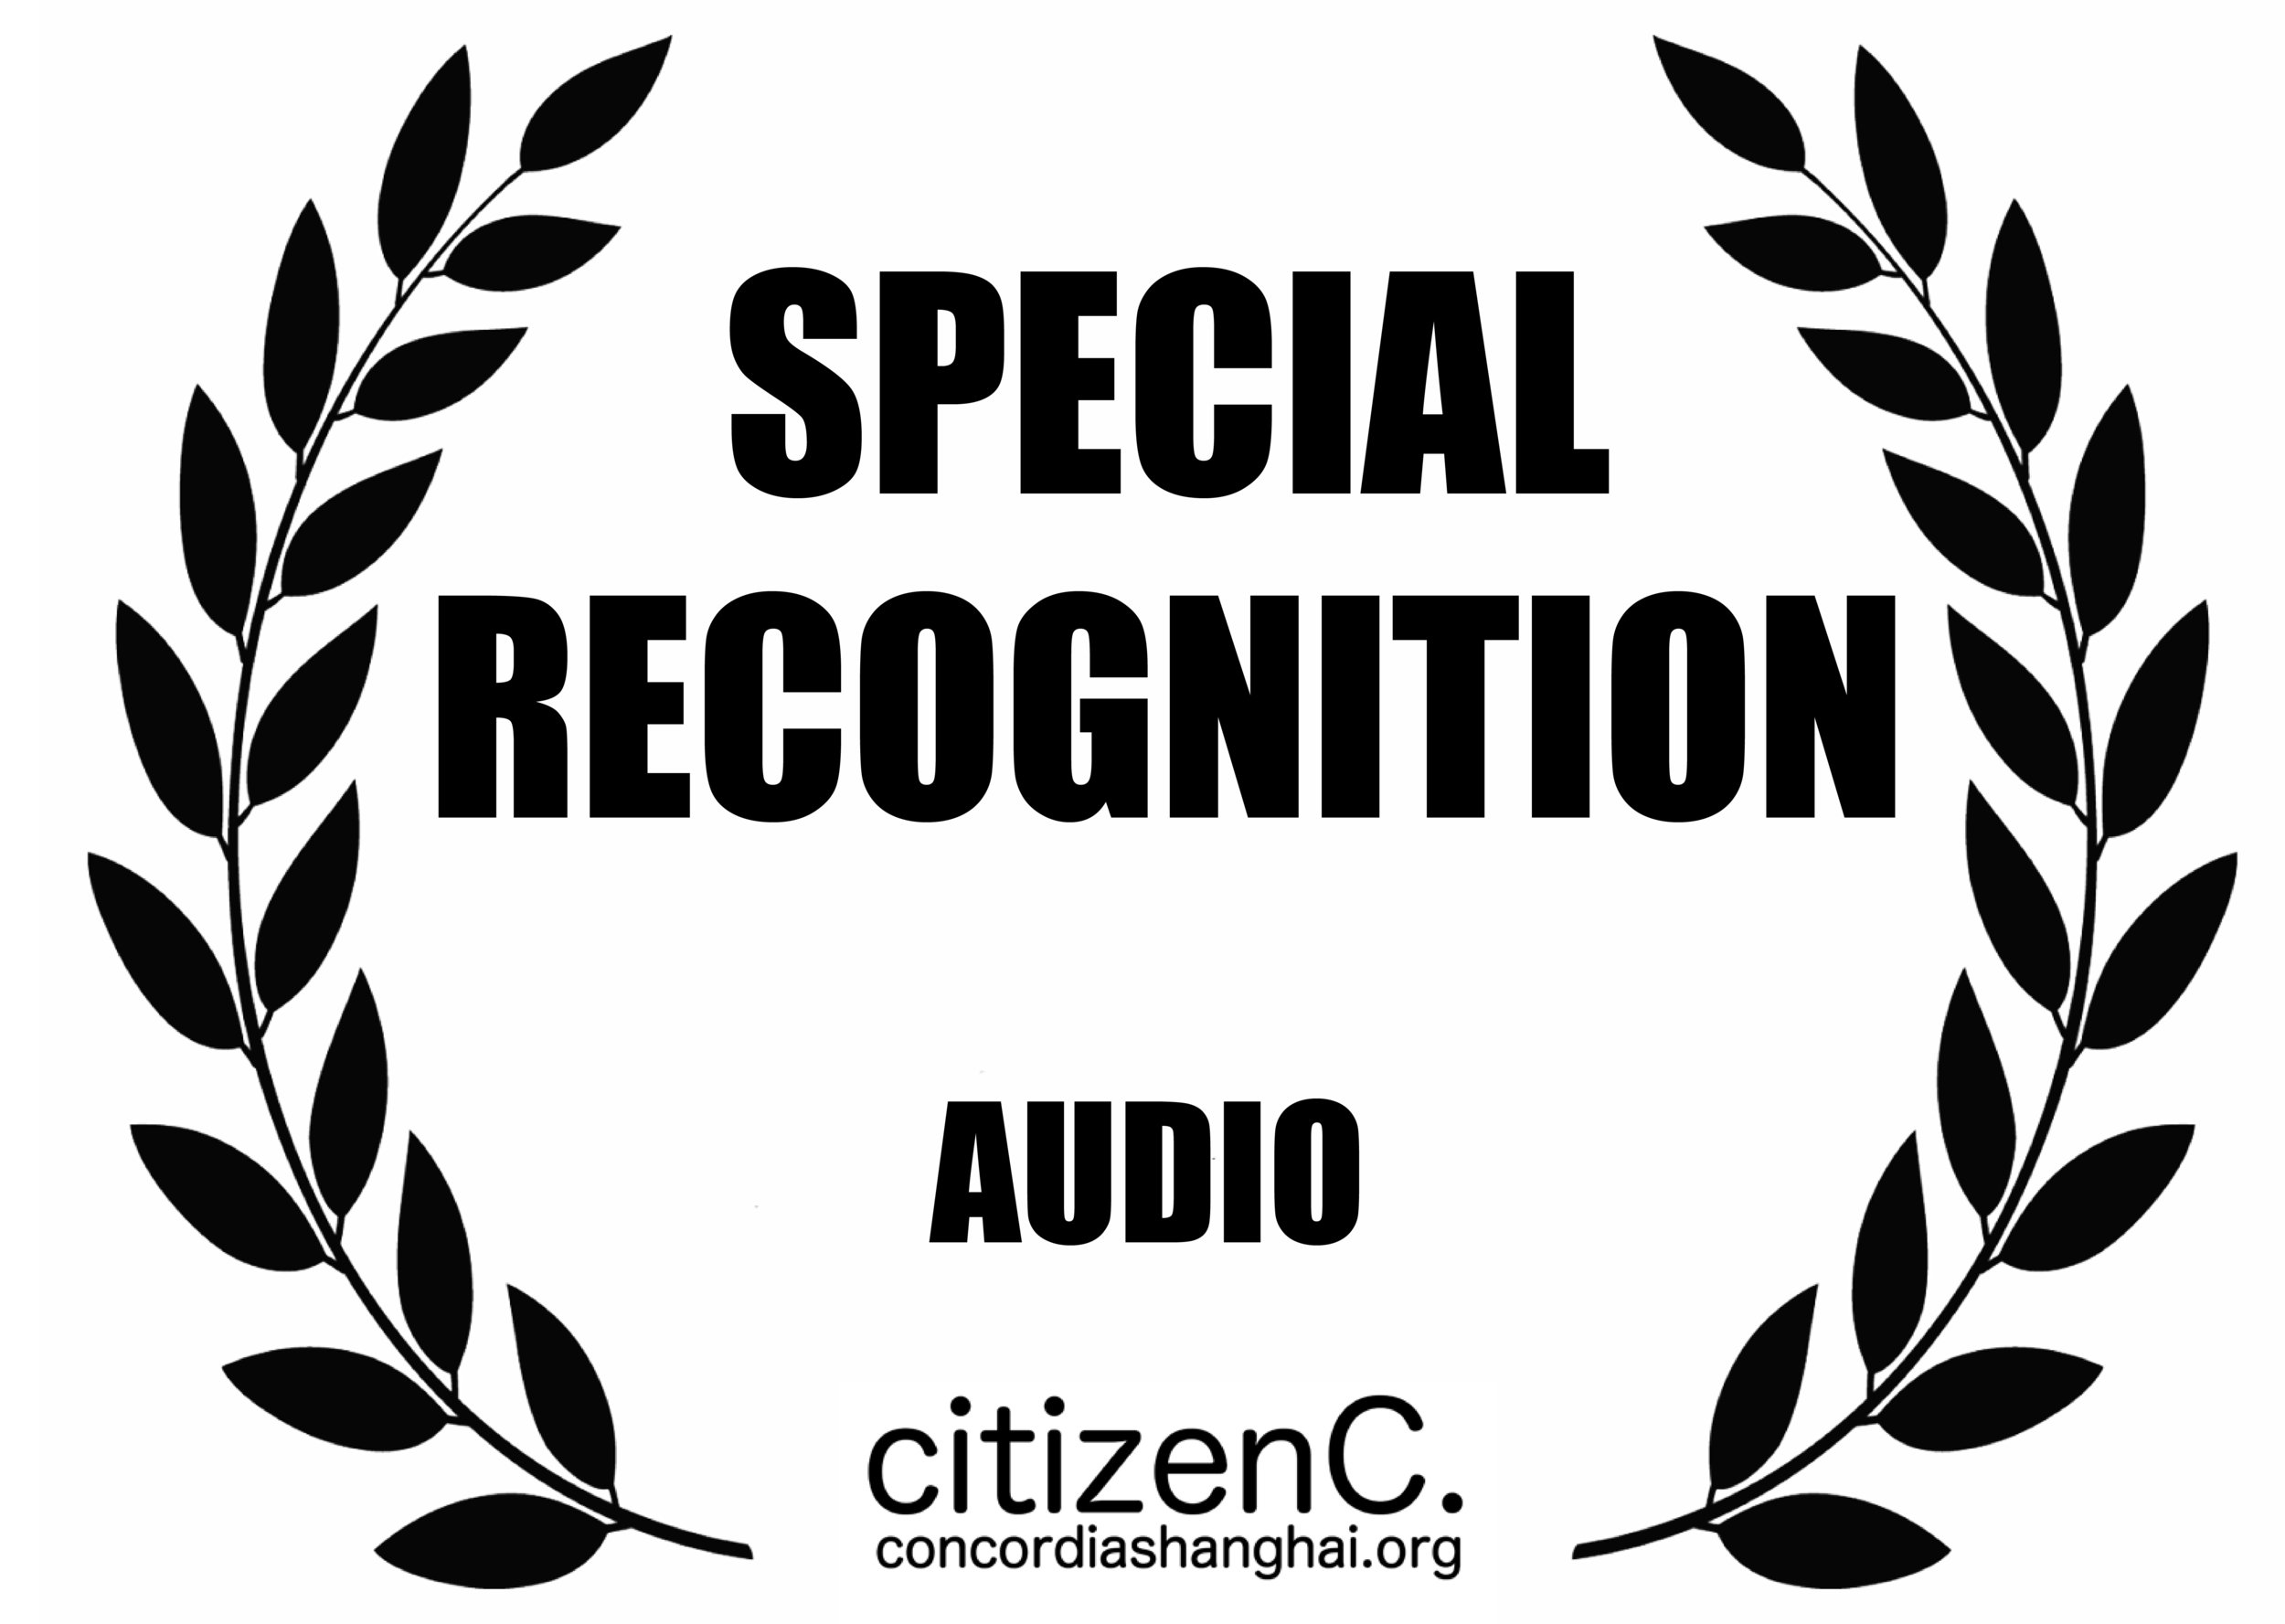 SpecialRecognitionAUDIO.jpg